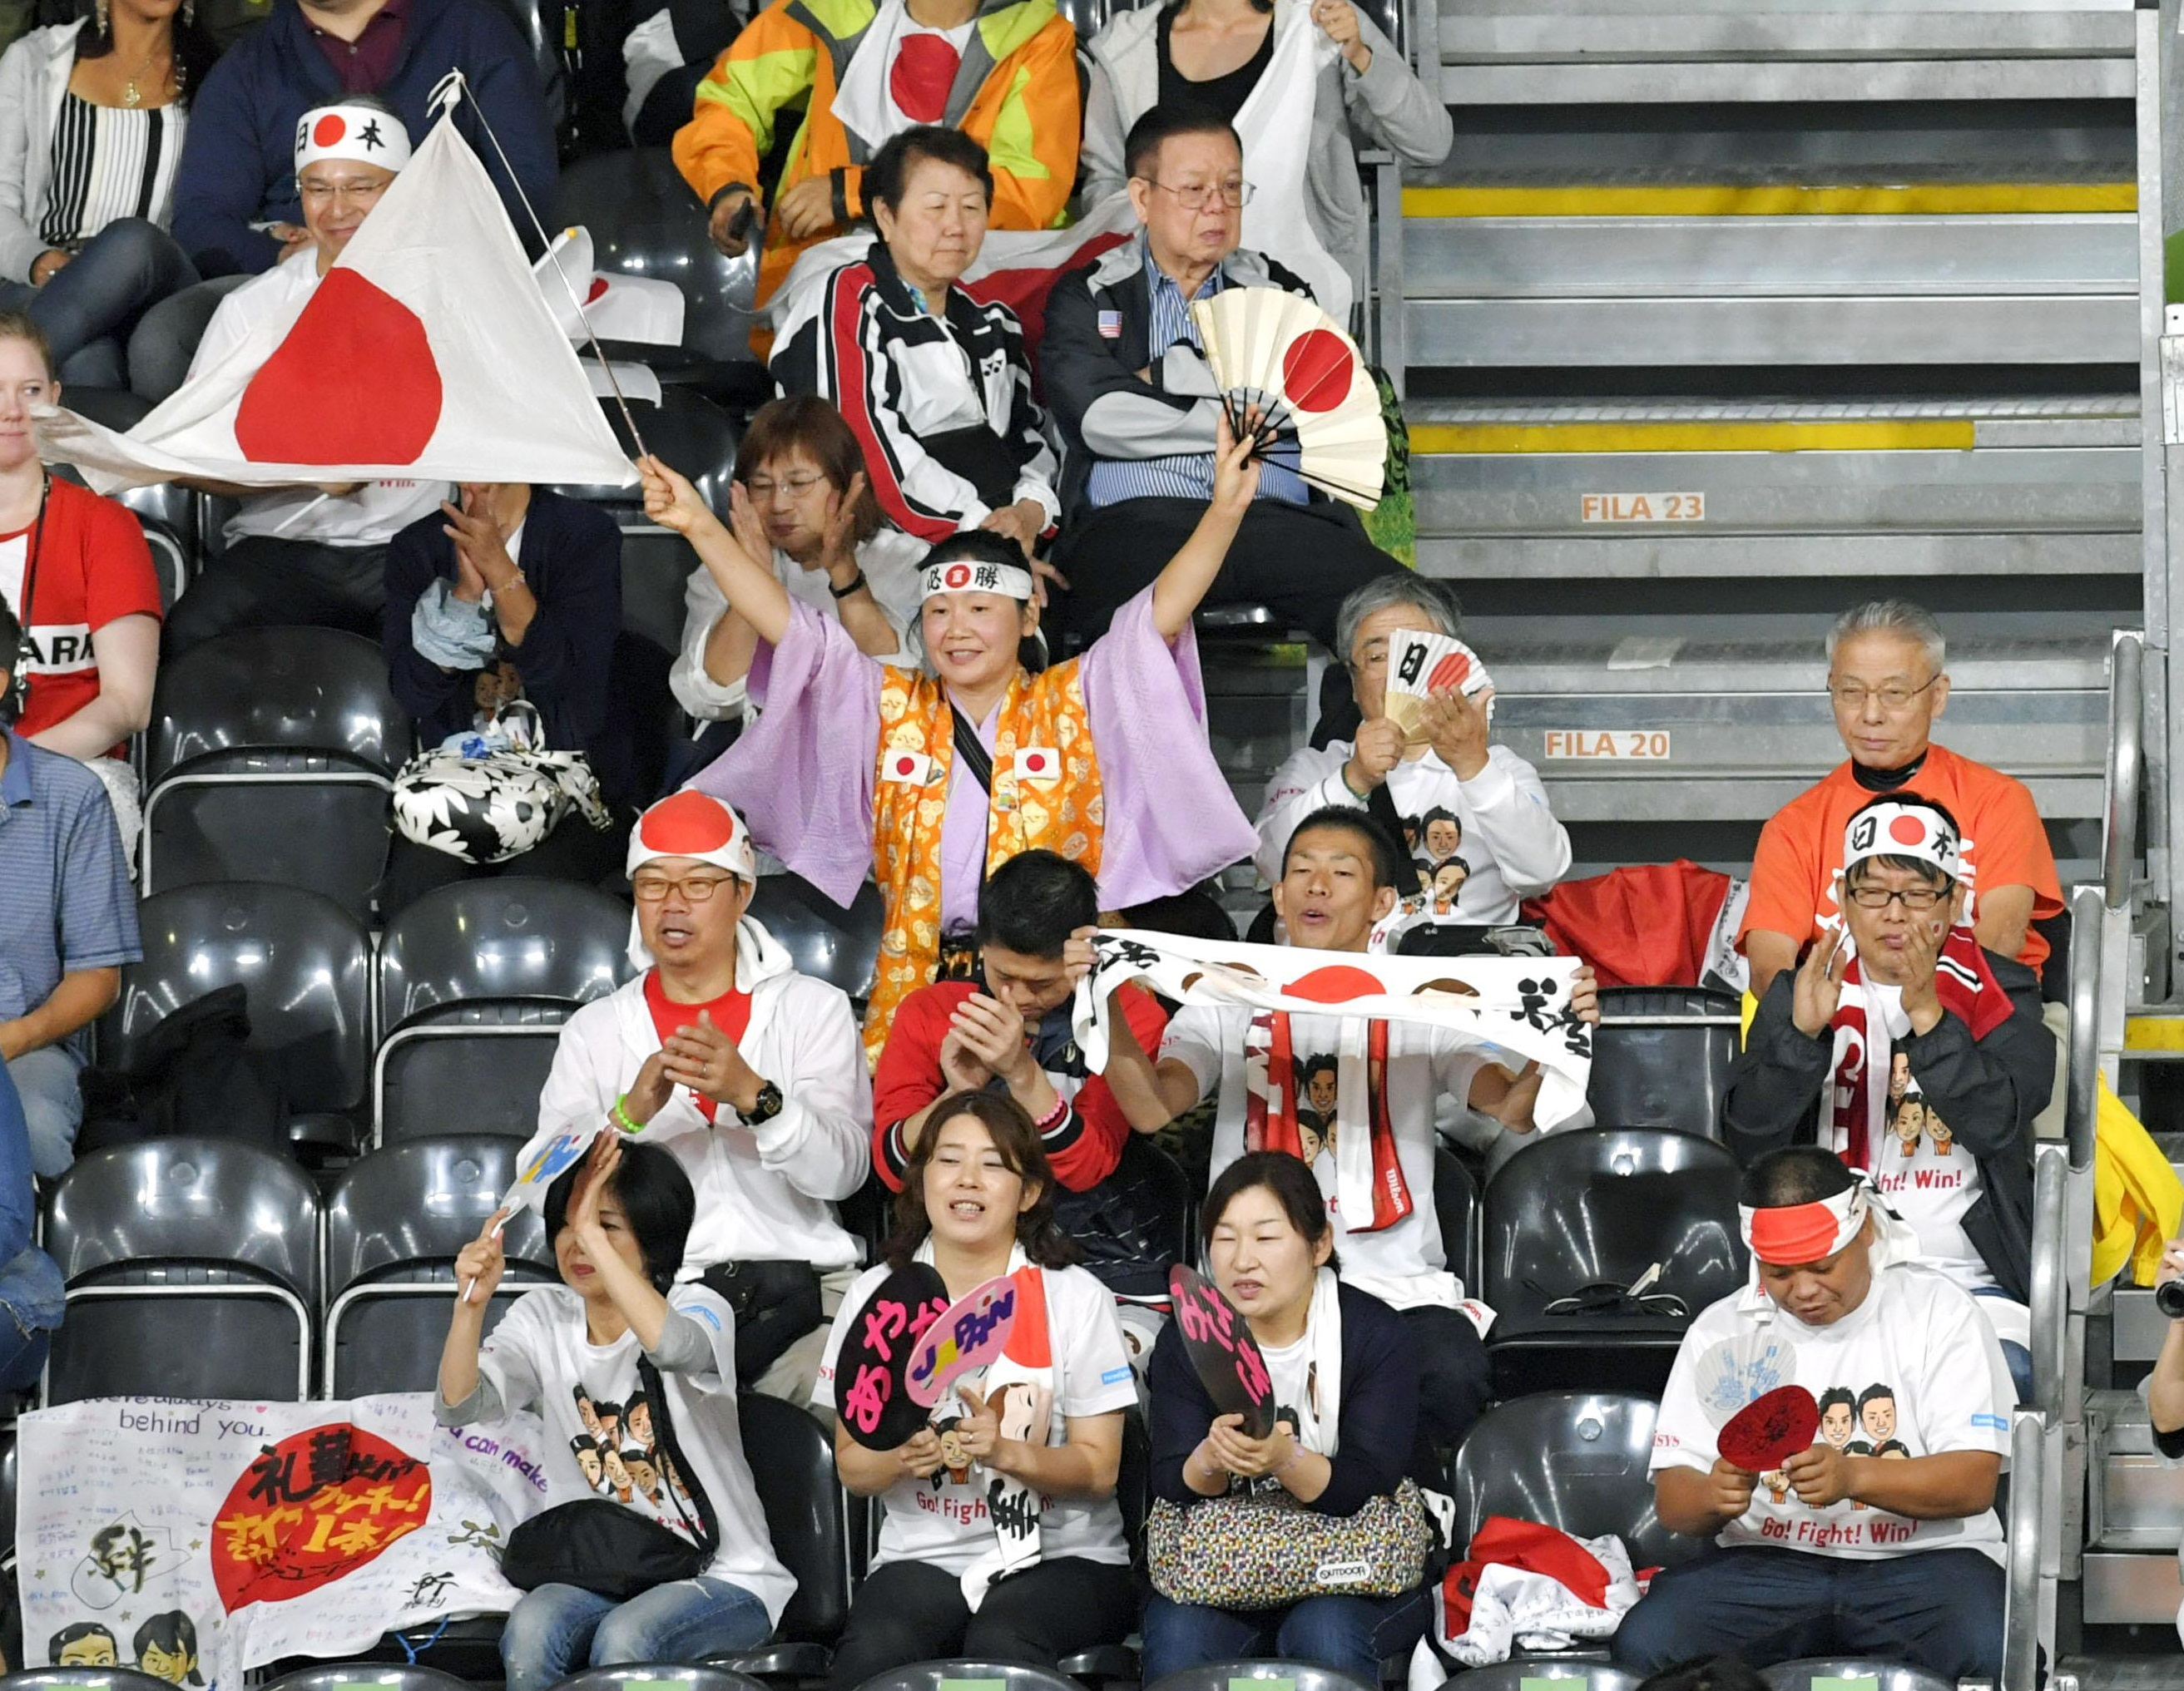 Japanese fans cheer from the stands at the badminton venue at the 2016 Rio de Janeiro Olympics on Friday. | KYODO